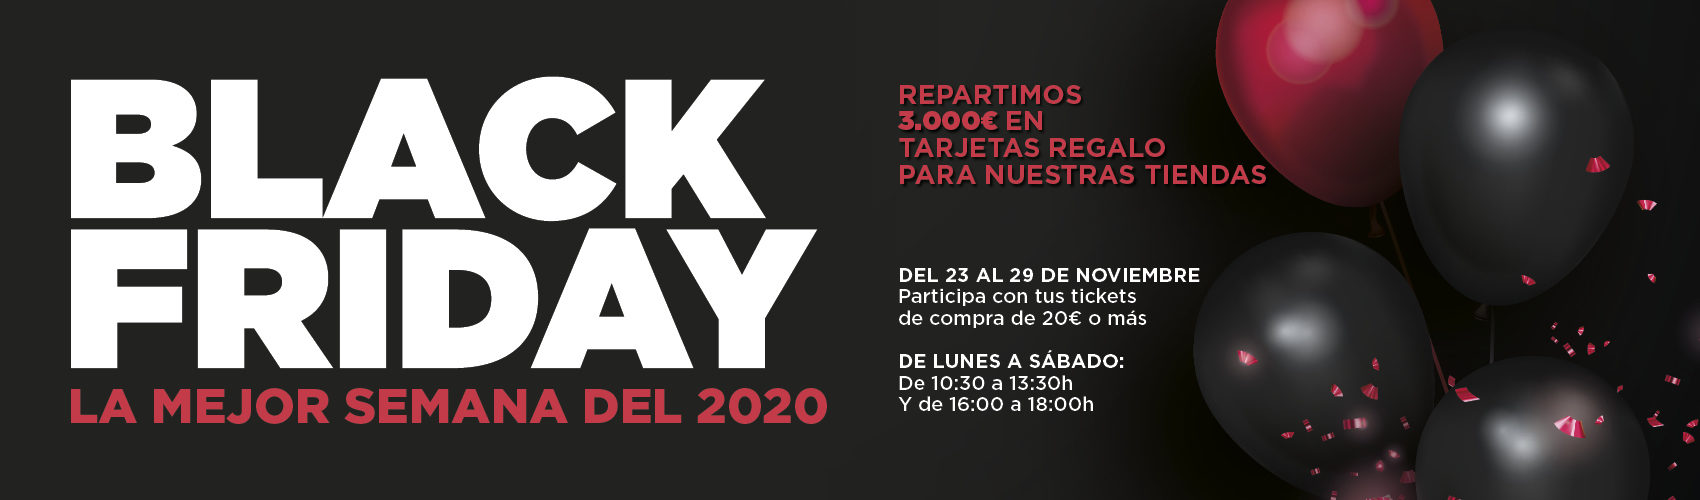 Gransur_black friday_banner web